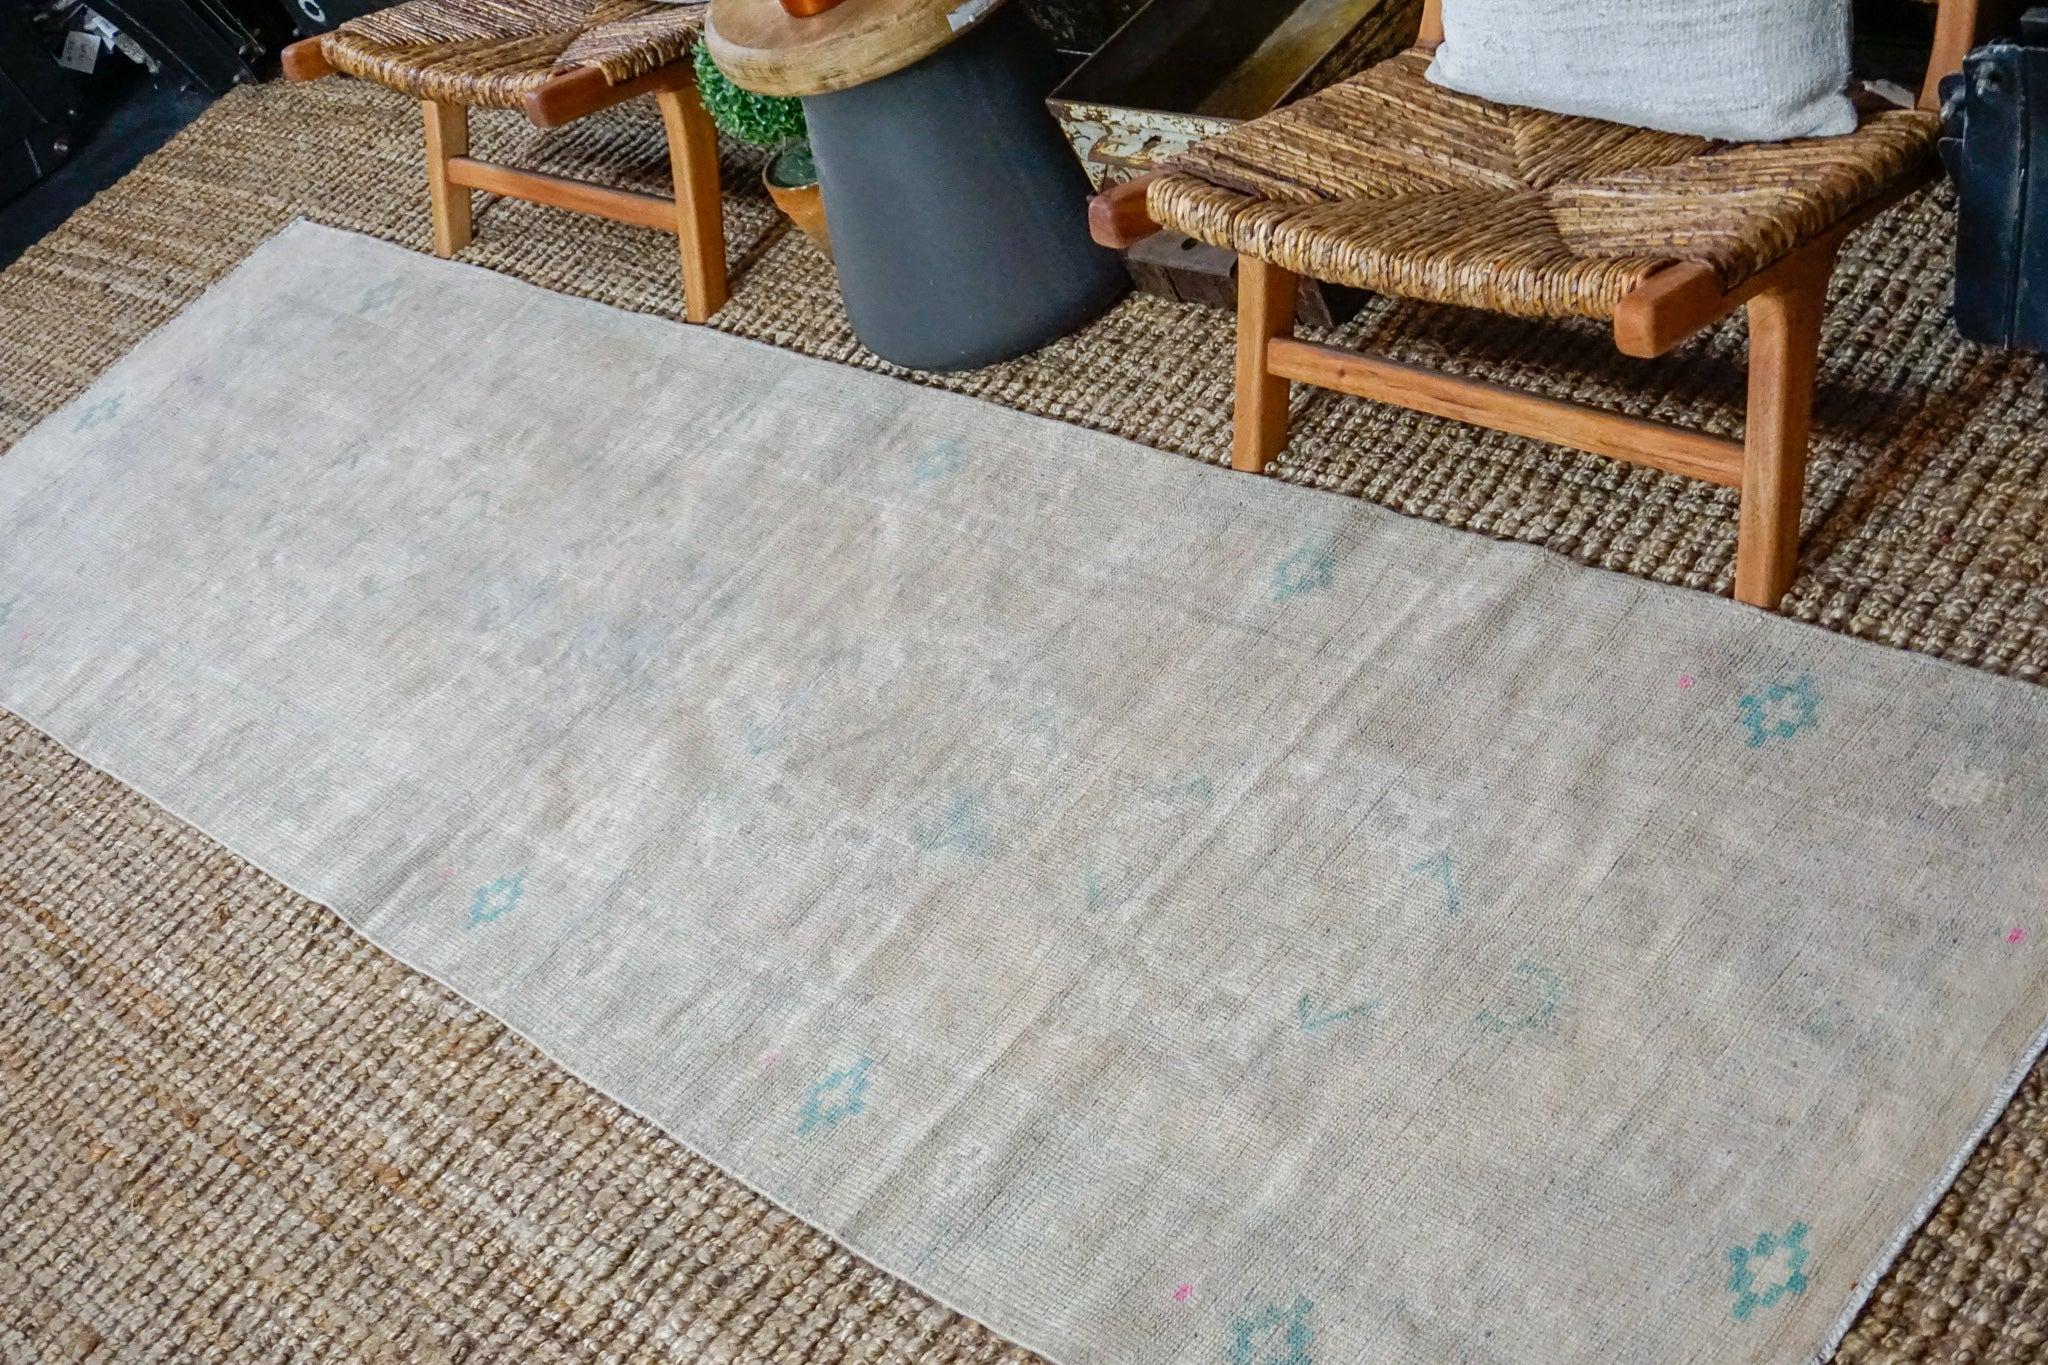 3' x 10' Vintage Turkish Oushak Runner Muted Gray, Turquoise and Beige